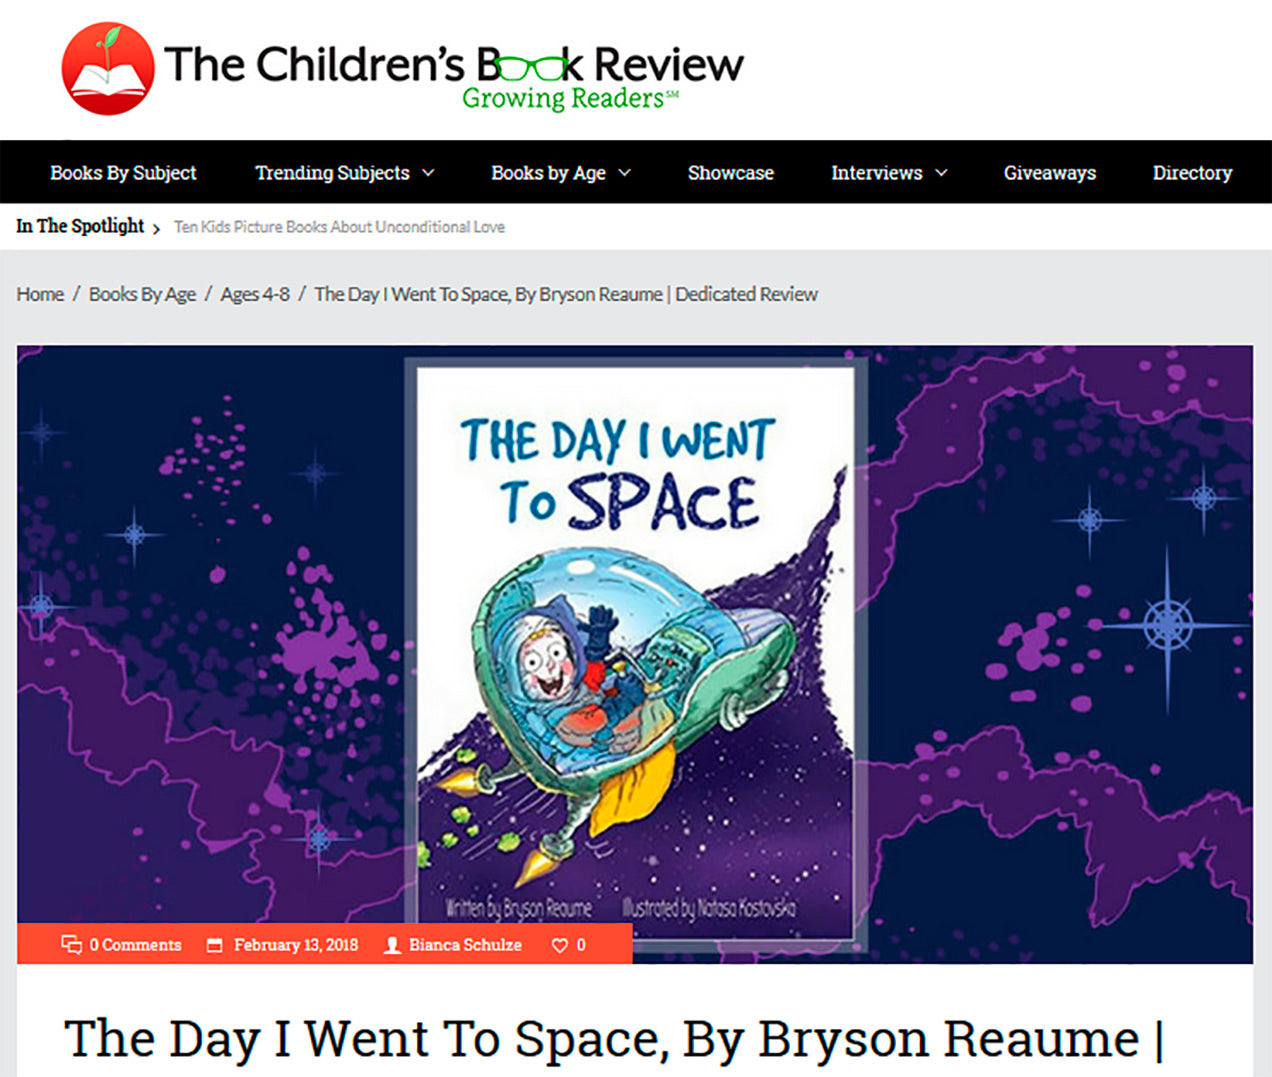 The Day I Went to Space reviewed on The Children's Book Review